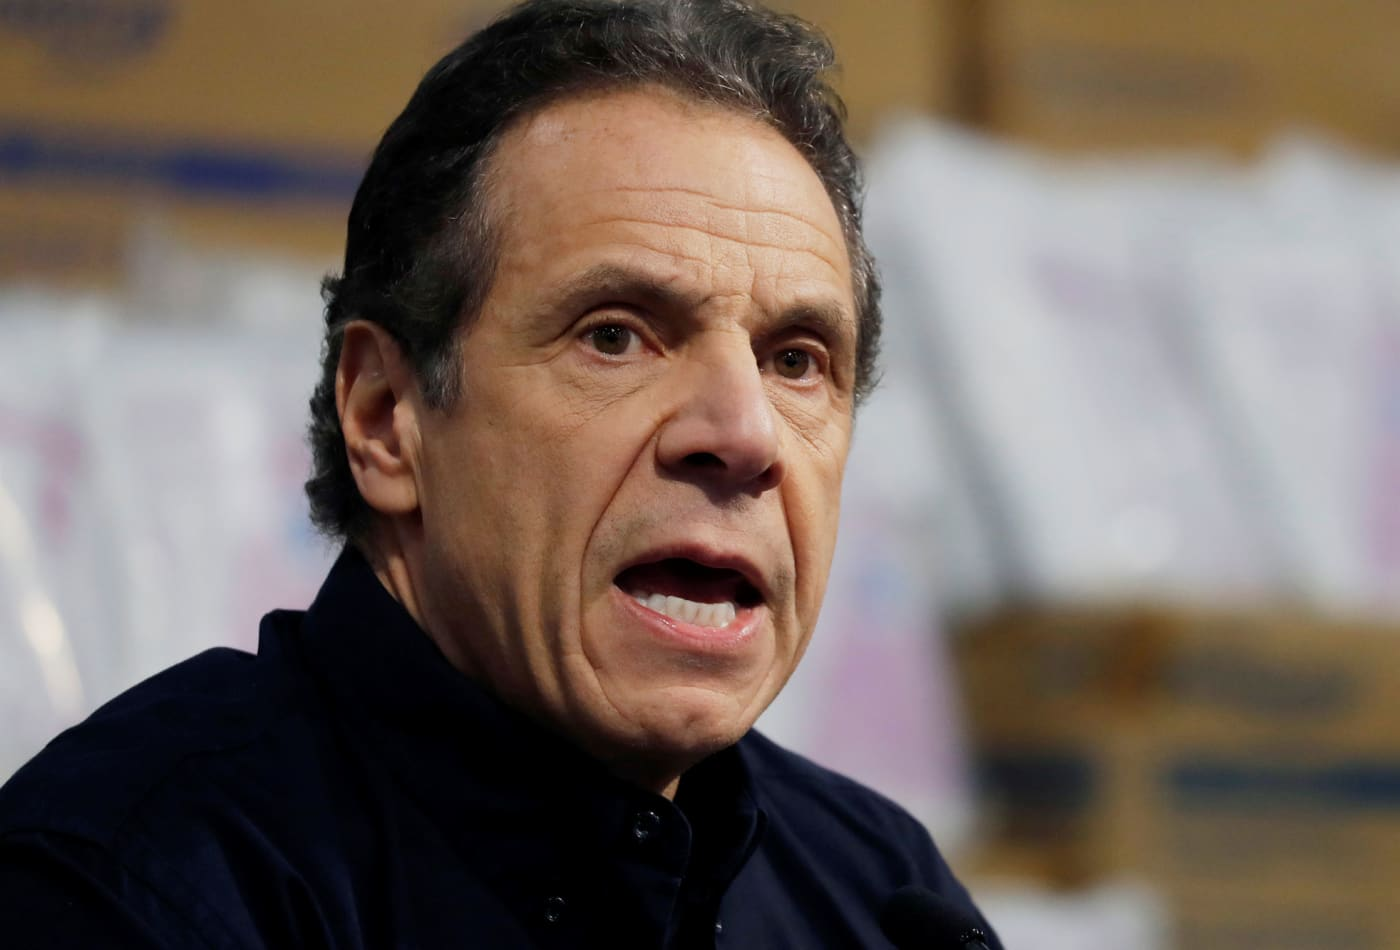 New York Gov. Cuomo issues nationwide call for doctors and nurses as state battles worst coronavirus outbreak in US